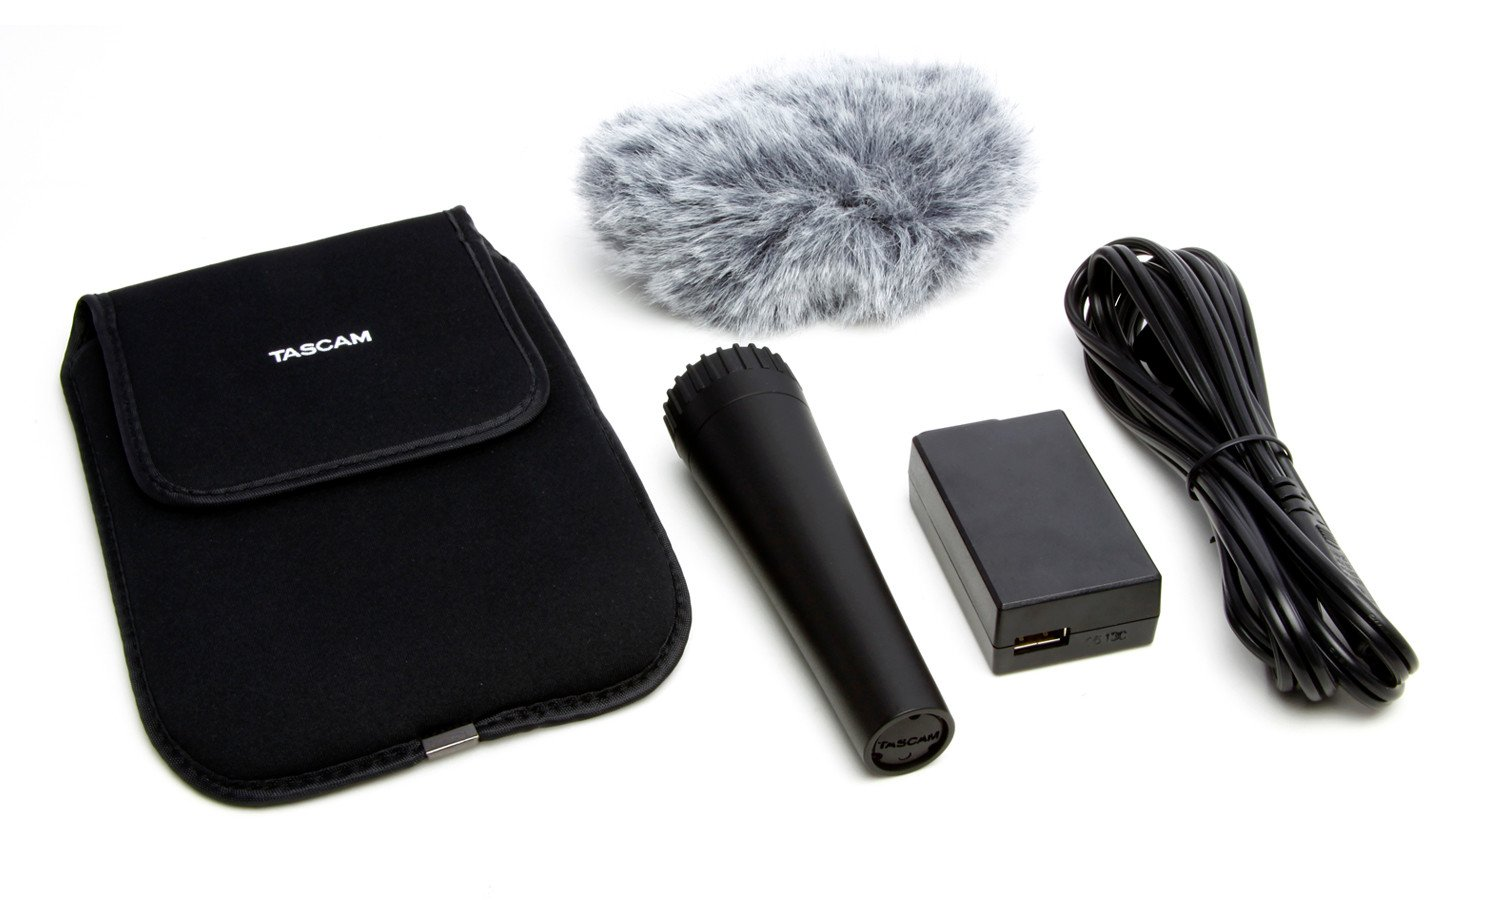 Handheld DR-Series Recording Accessory Package